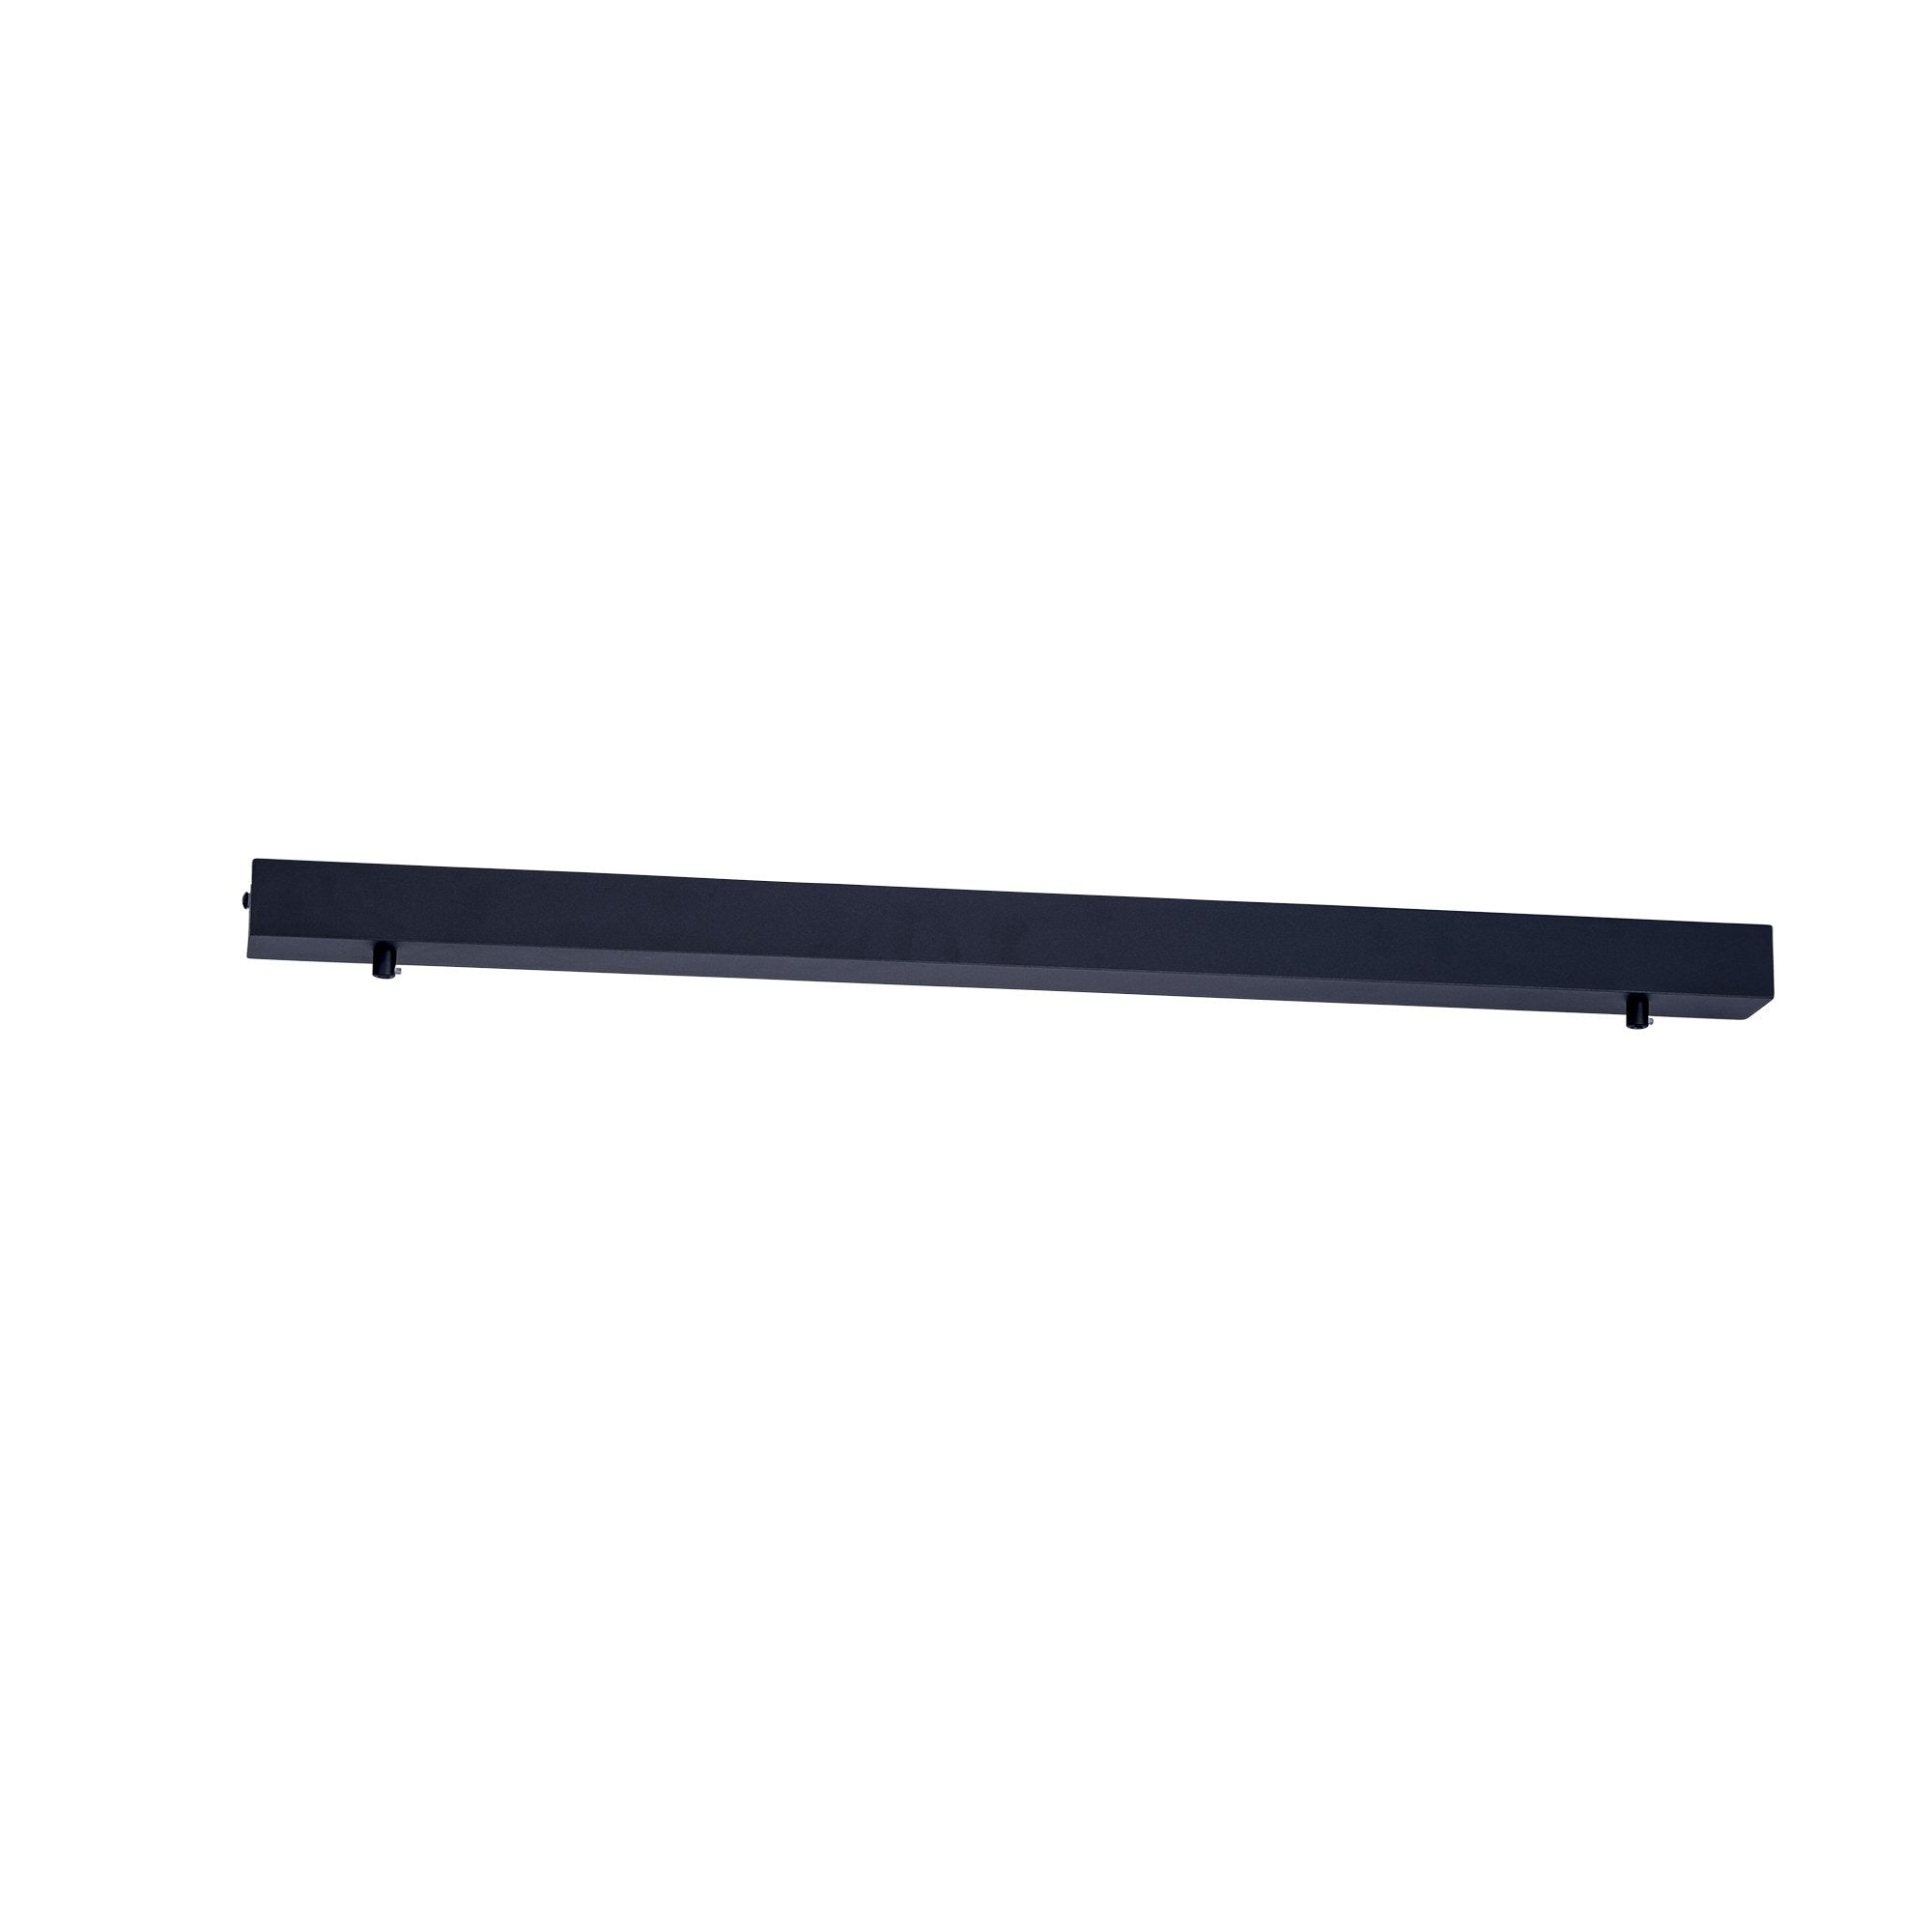 HV9705-5080-BLK - 800mm Rectangle Surface Mounted Black Pendant Canopy